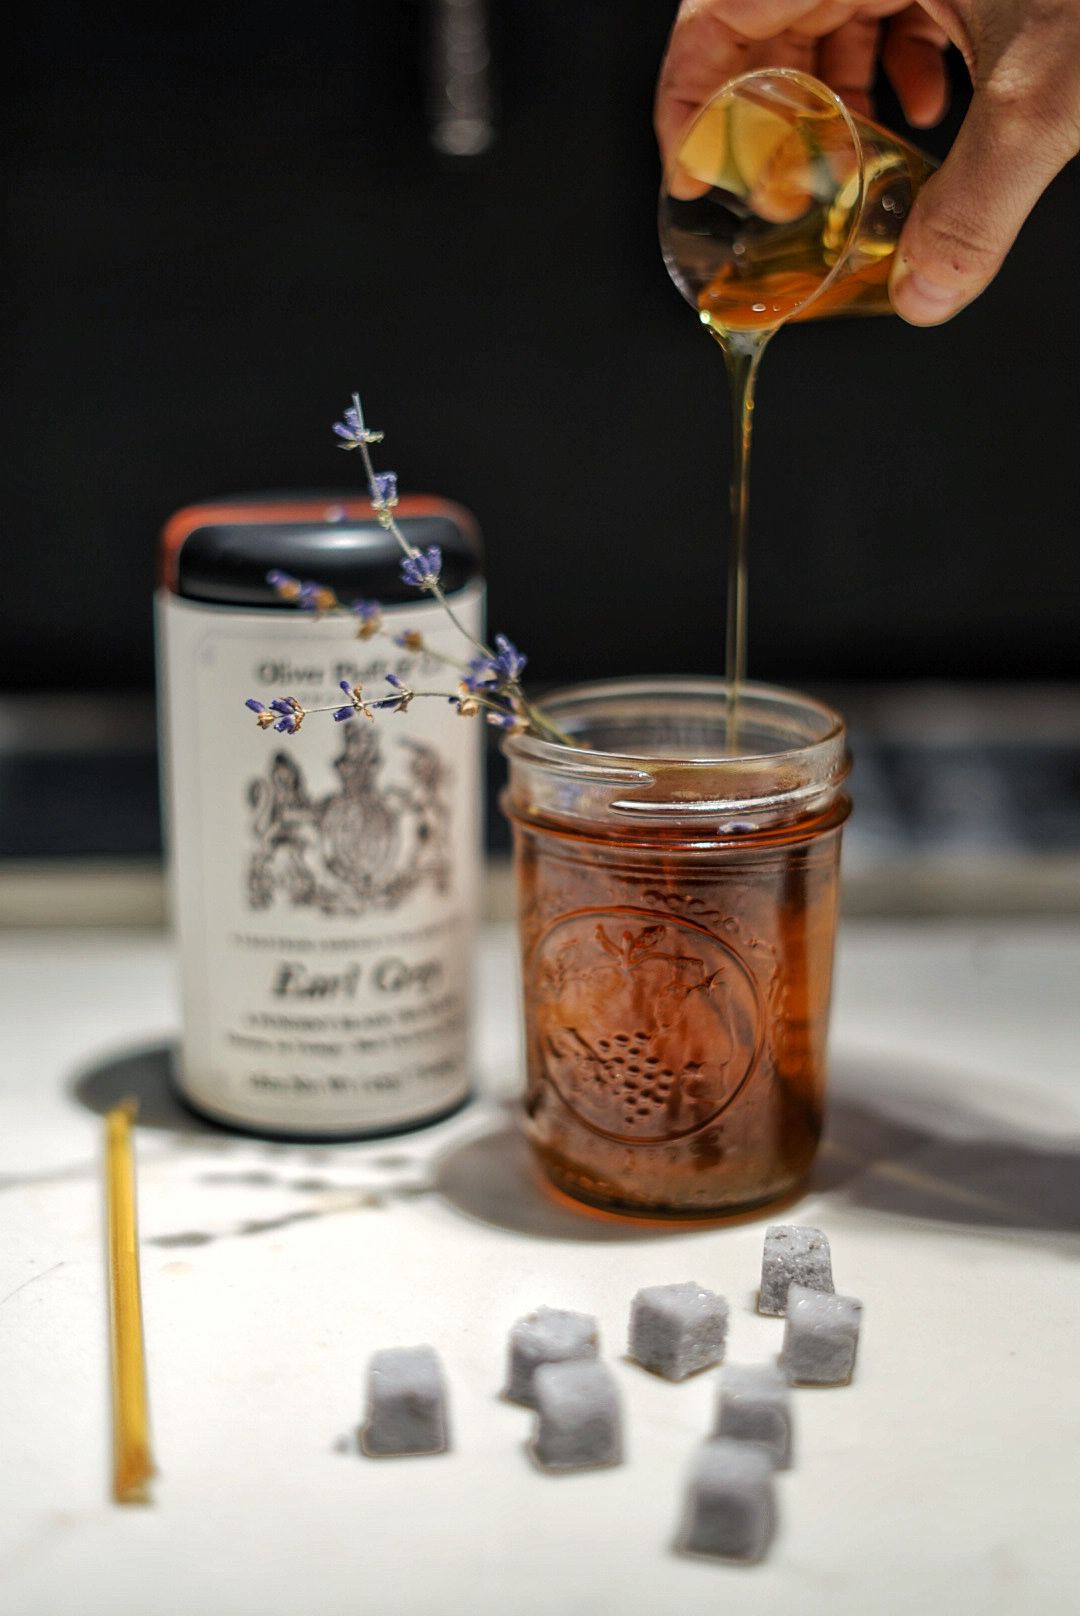 A mason jar filled with tea, garnished with a lavender sprig. Sugar cubes sit in front of it.